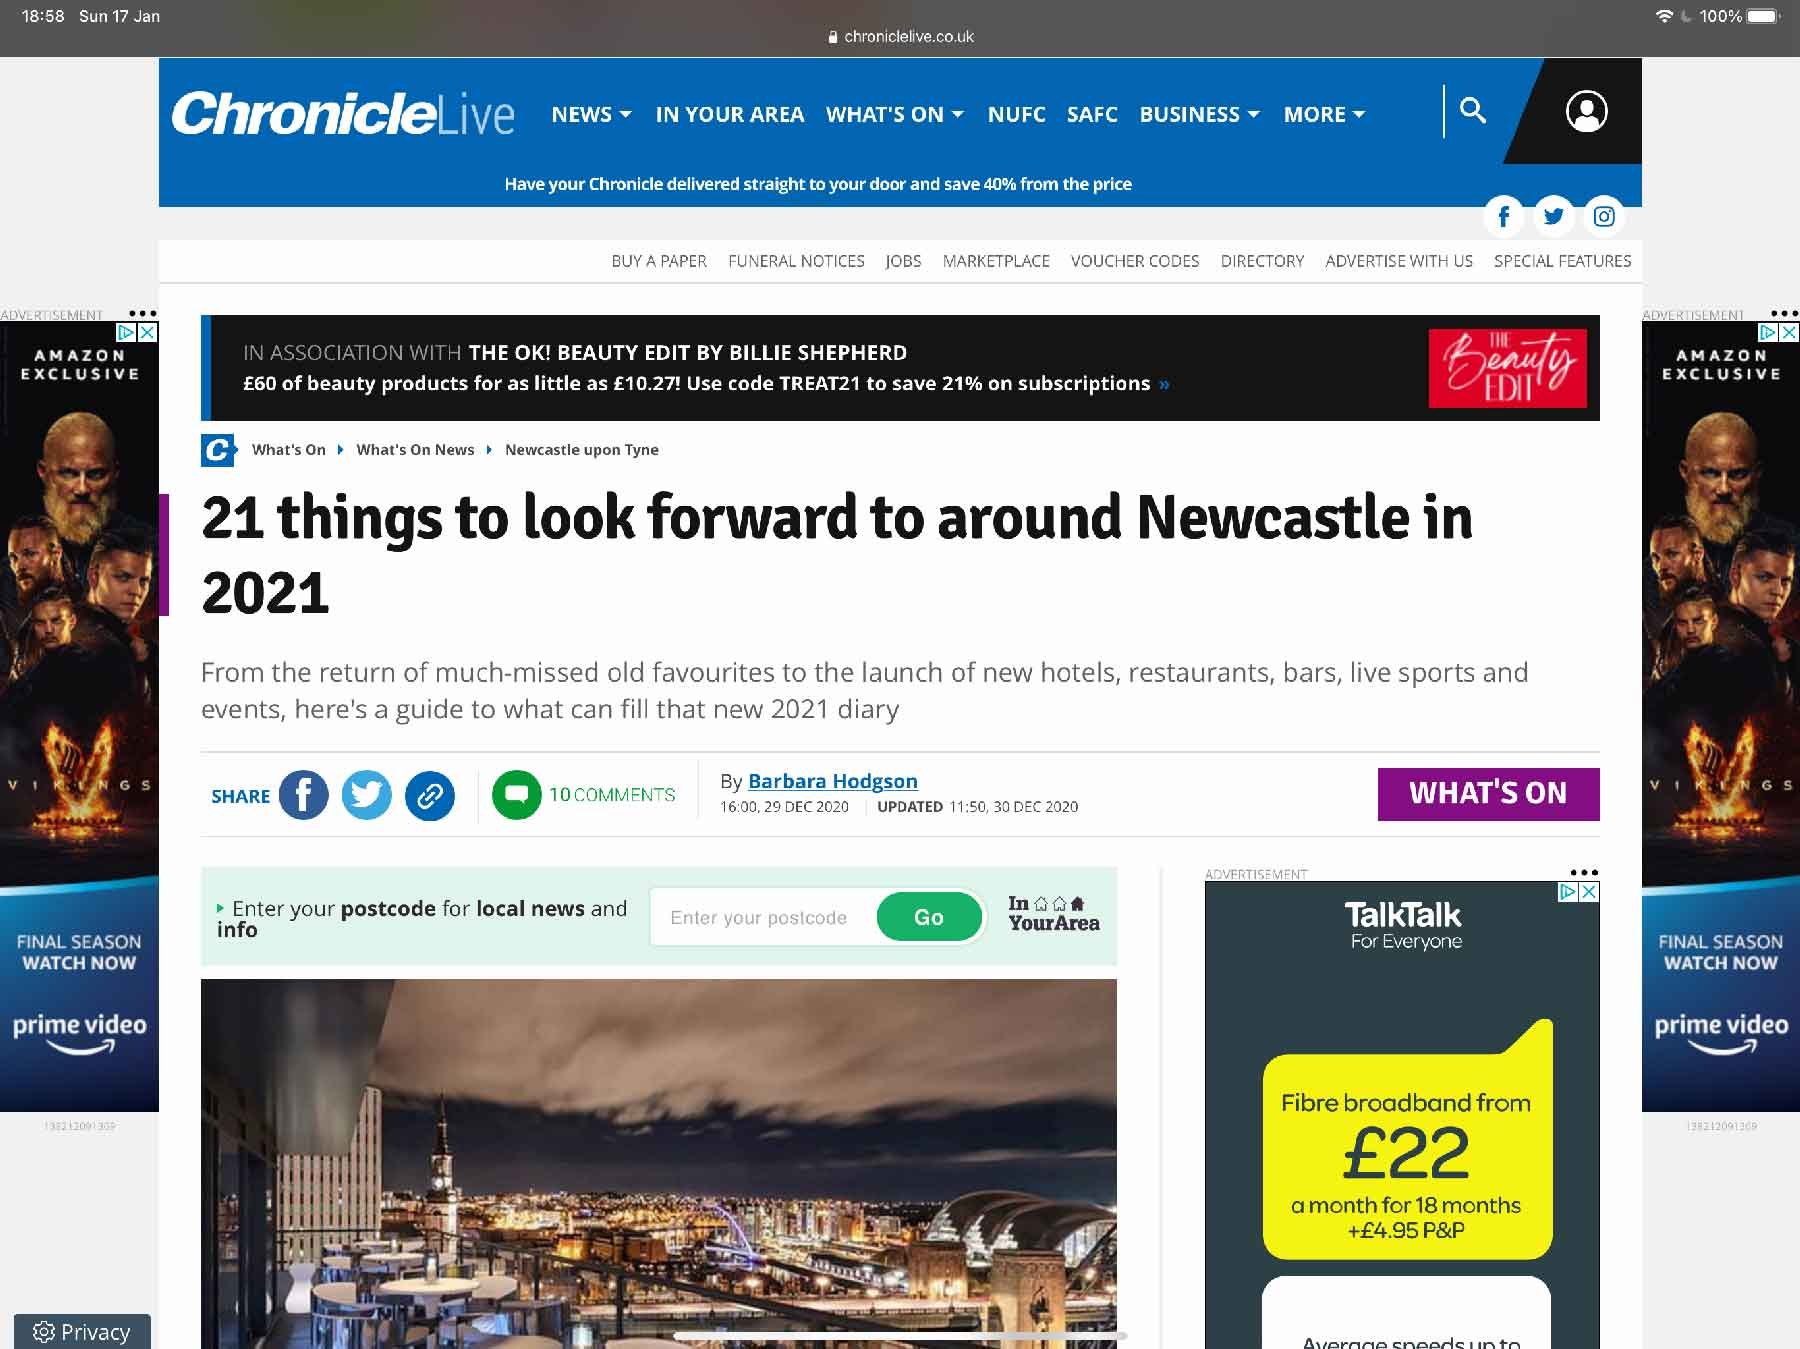 21 things to look forward to around Newcastle in 2021